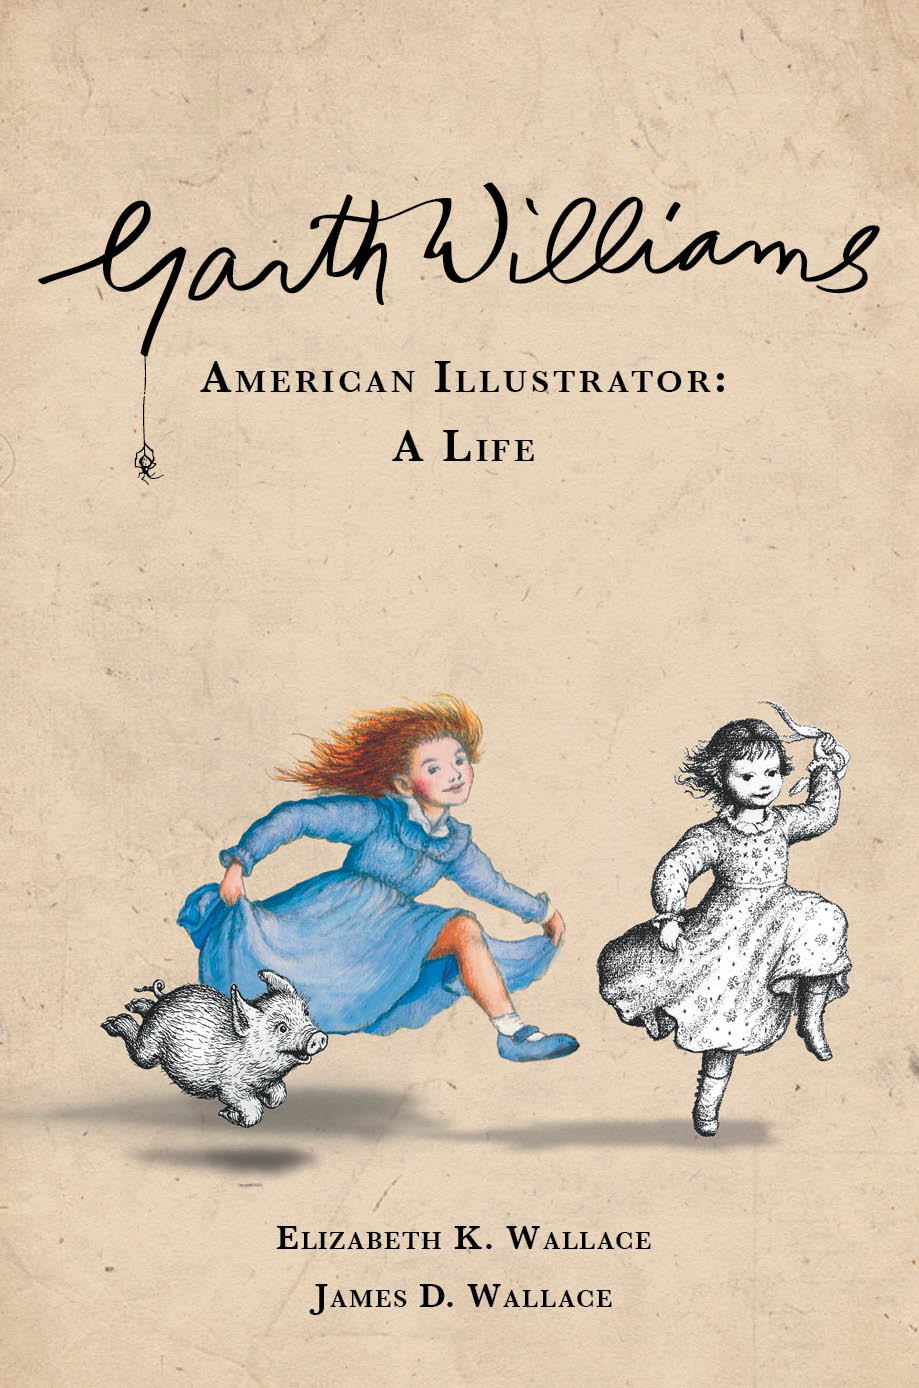 Garth Williams, American Illustrator